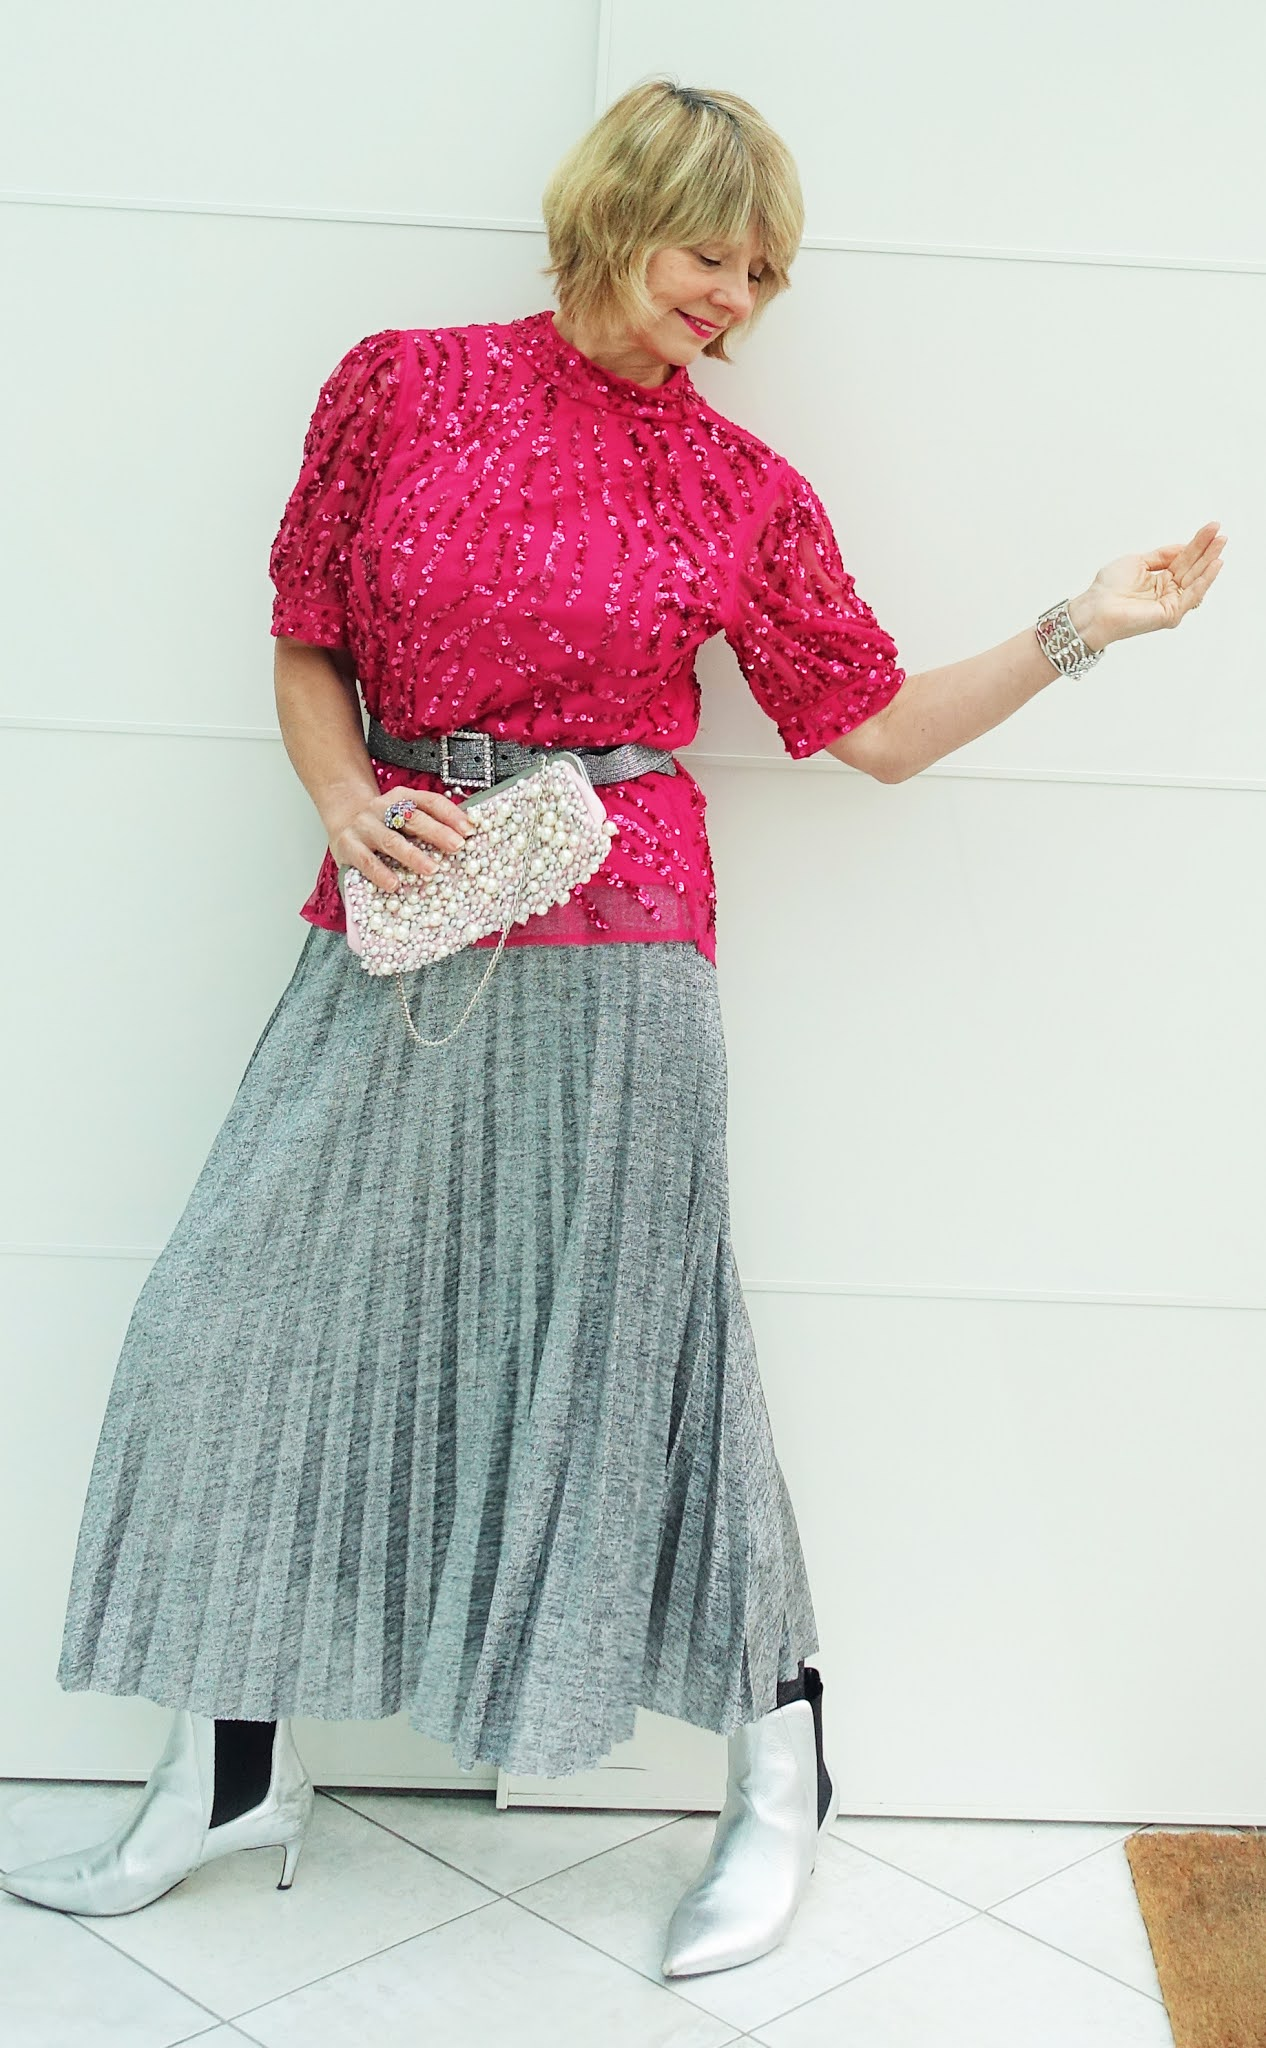 Sequins for Christmas with style blogger Is This Mutton in pink Gemma top from Monsoon and silver pleated skirt